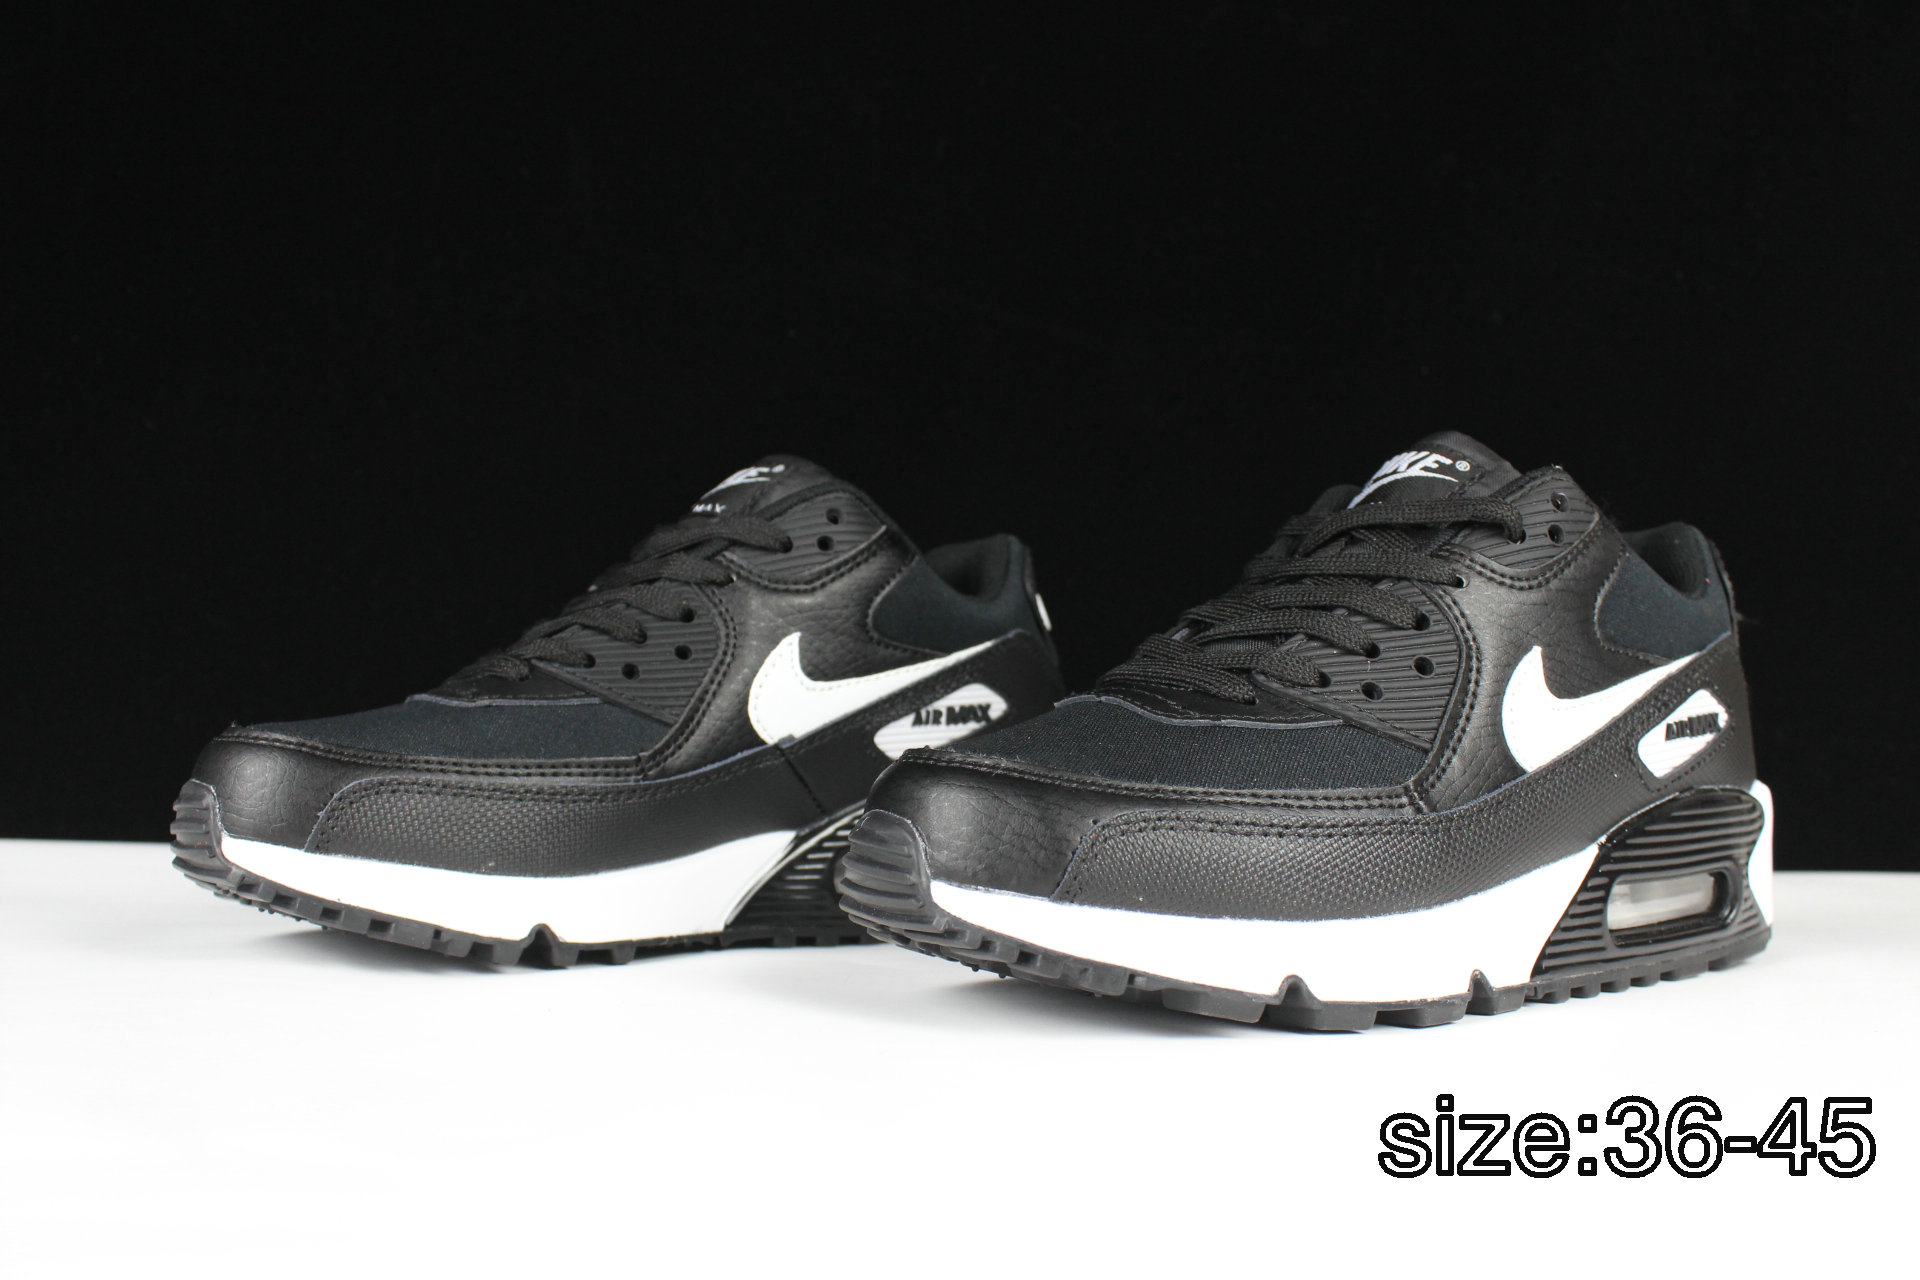 new arrival 76a6a 6bb3f inexpensive nike air max 90 leather black white 7e68a a141f